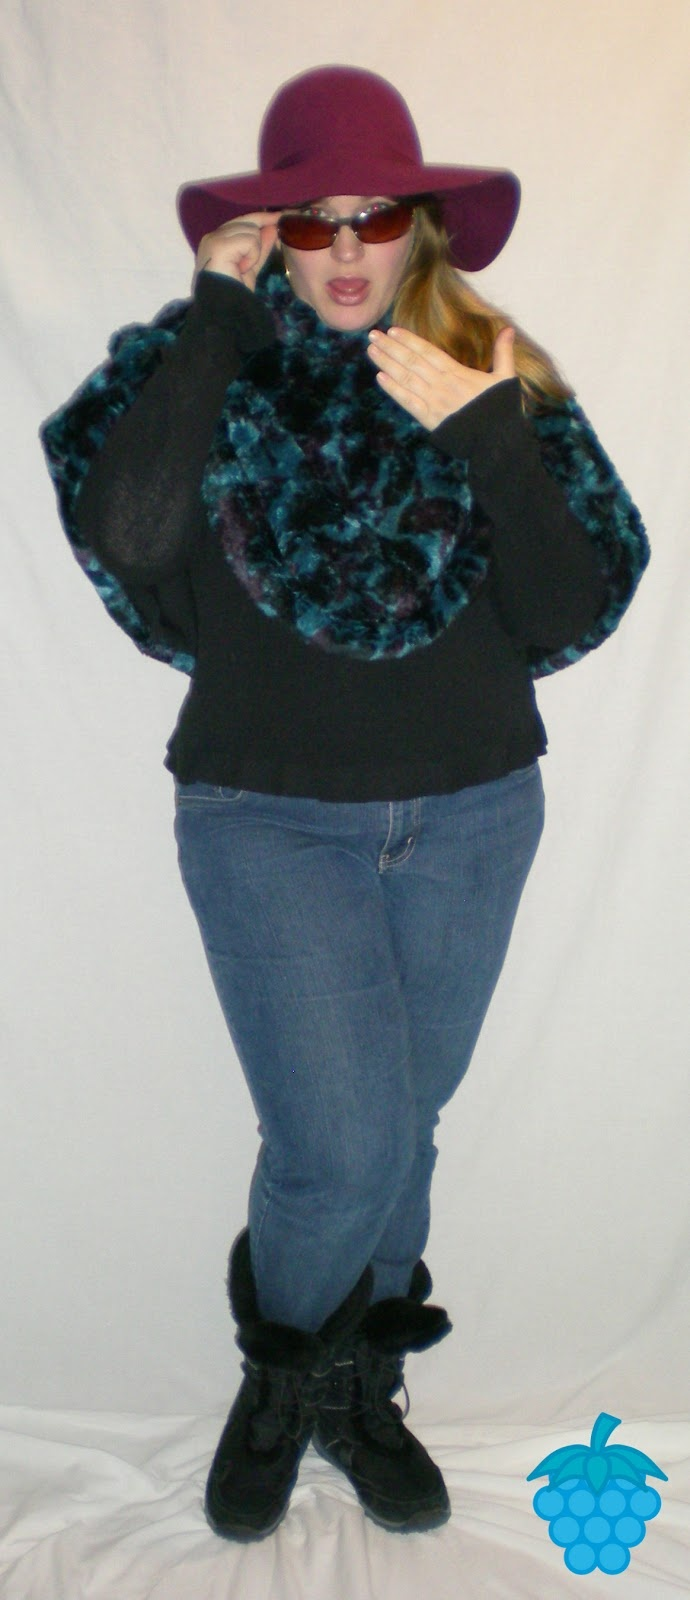 Framboize Turquoize: Prune, Sarcelle et Fausse Fourrure / Prune, Teal and Faux-Fur